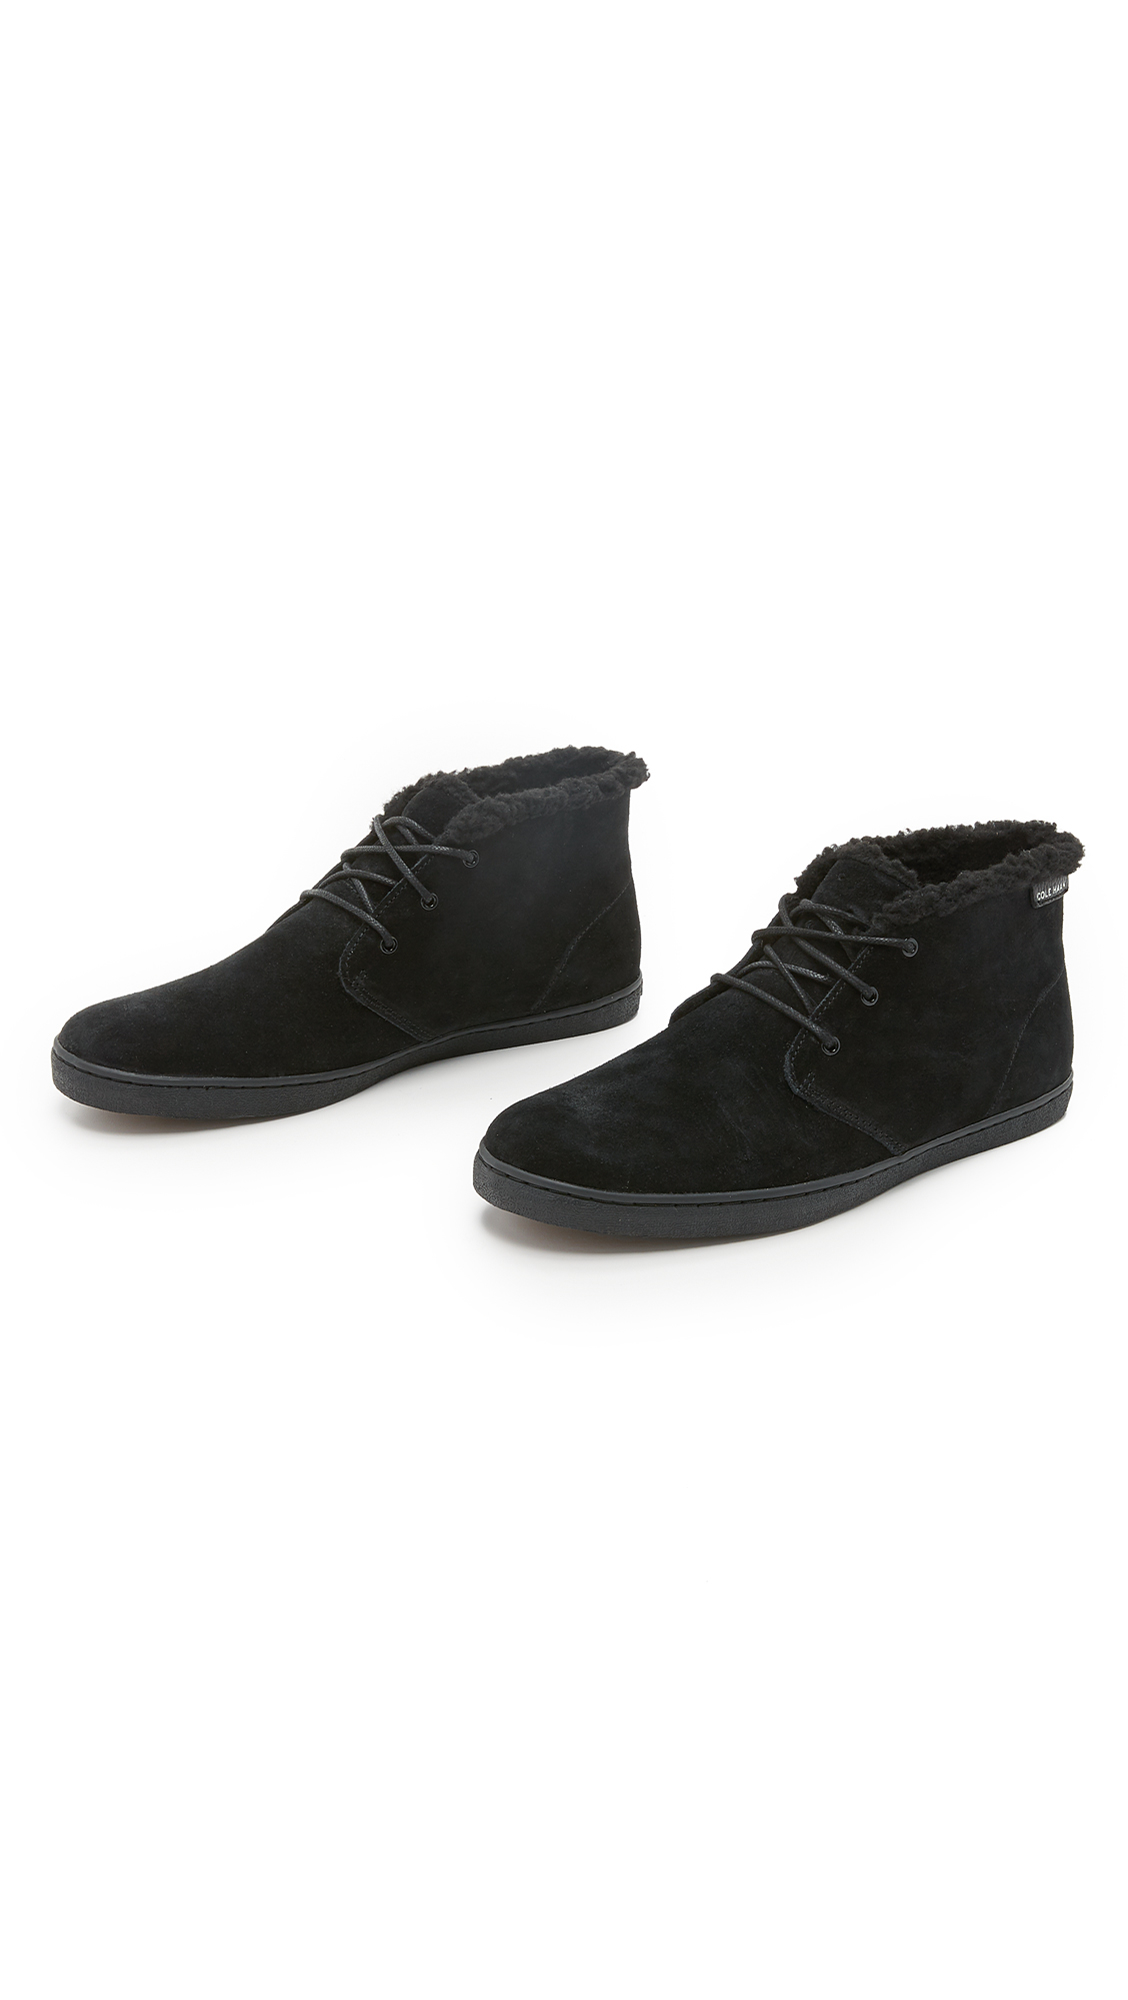 cole haan pinch suede weekender chukka boots in black for